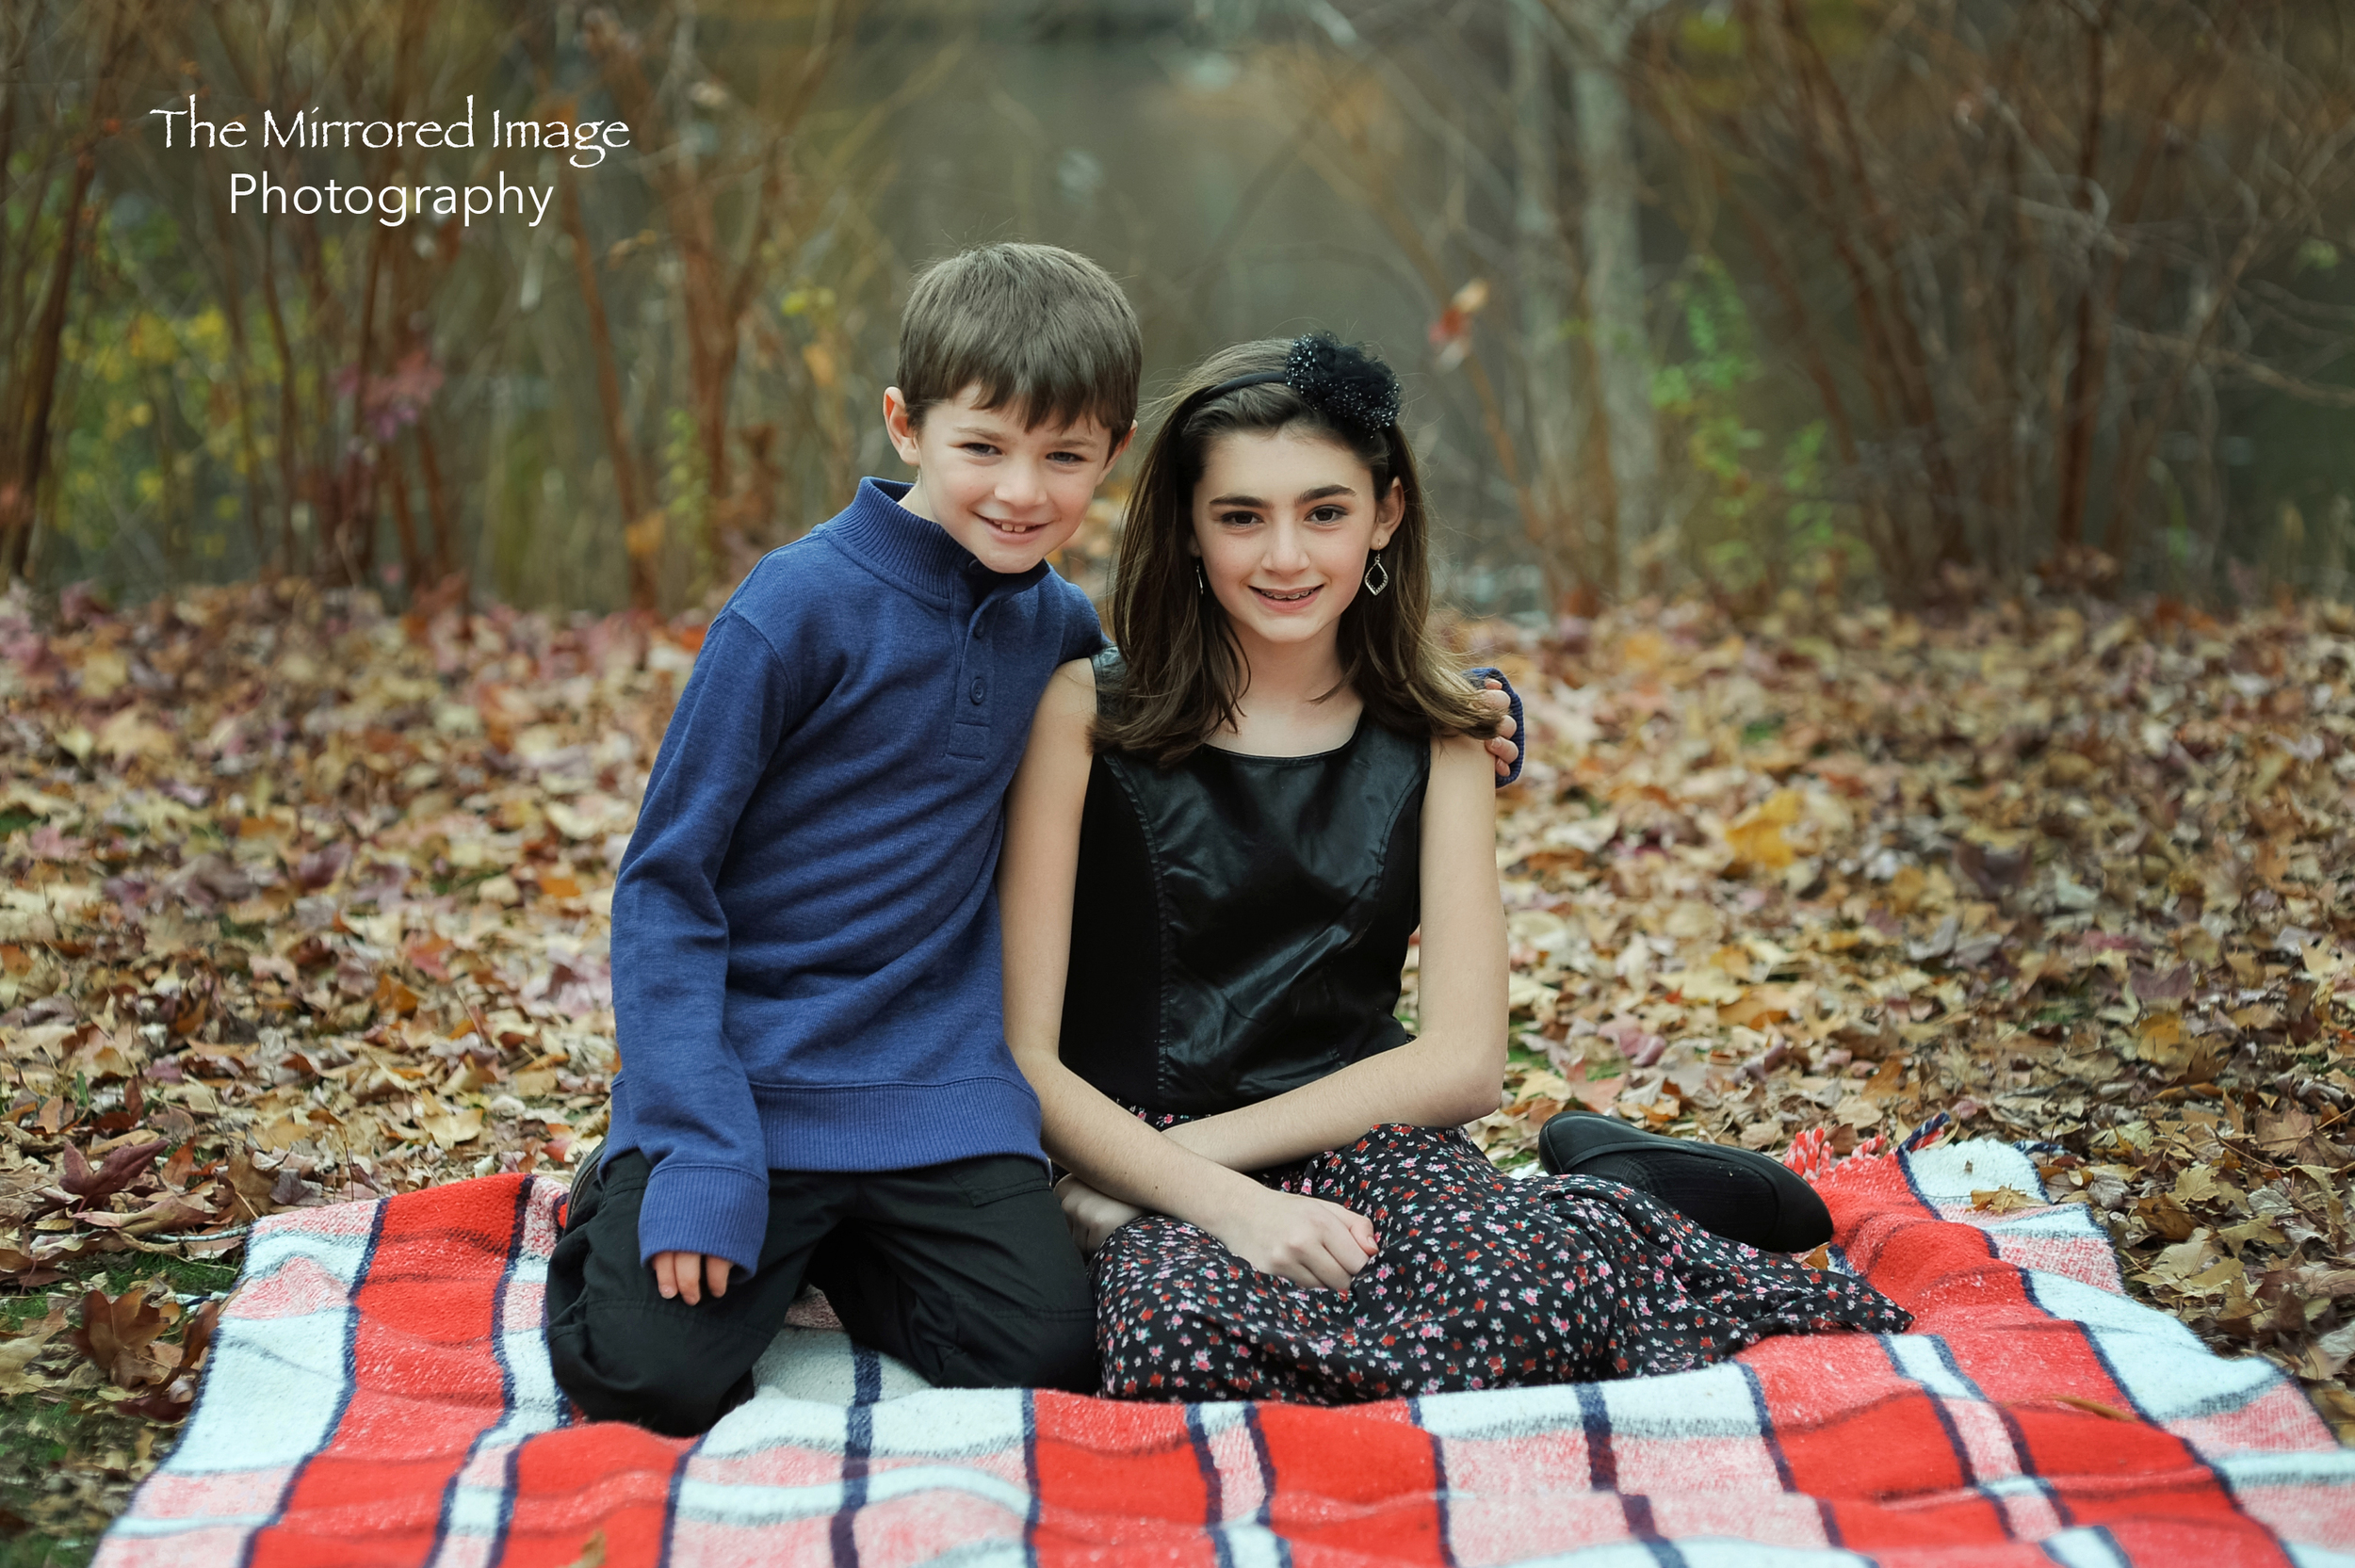 Children's Photography, Fine Art Photography, Fine Art Children's Photo, Children's Photography, Kid's Photos, Autumn leaves, Family Photography, Family Photographer, Family Photos